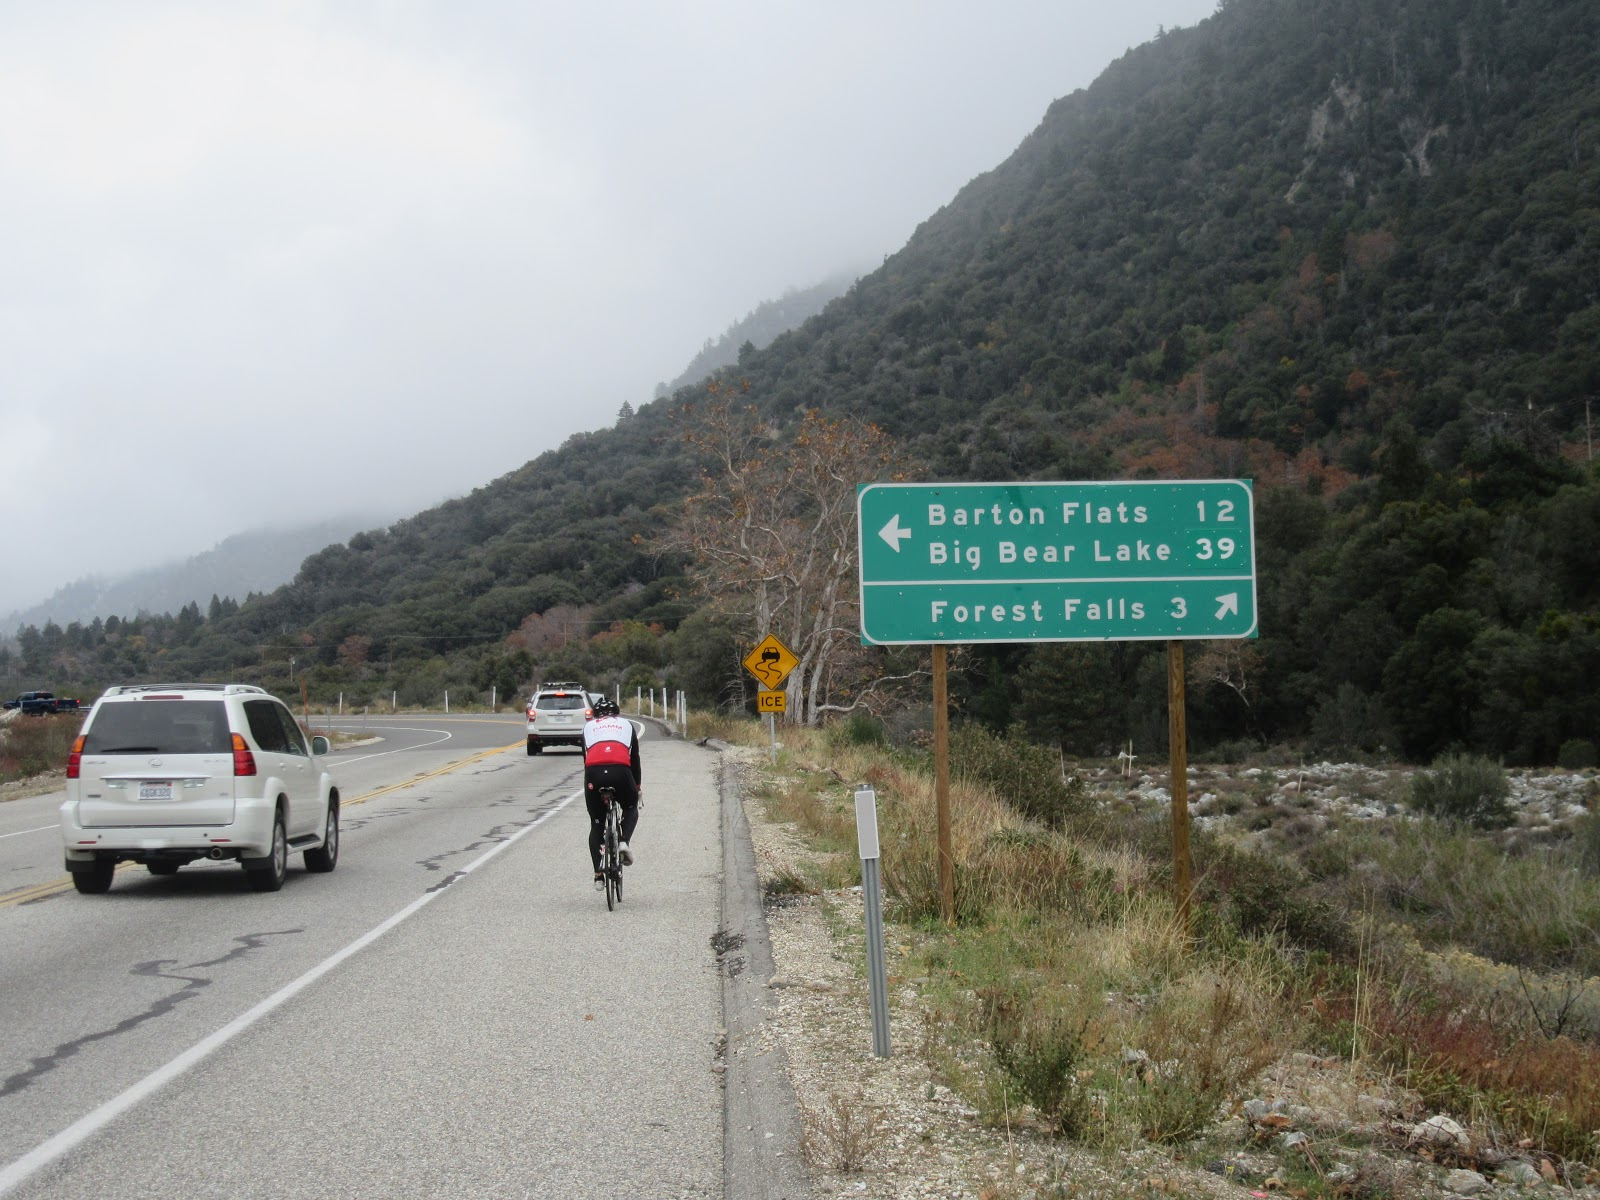 Cycling up Hwy 38 to Onyx Summit  - cyclist and road sign to Valley Falls